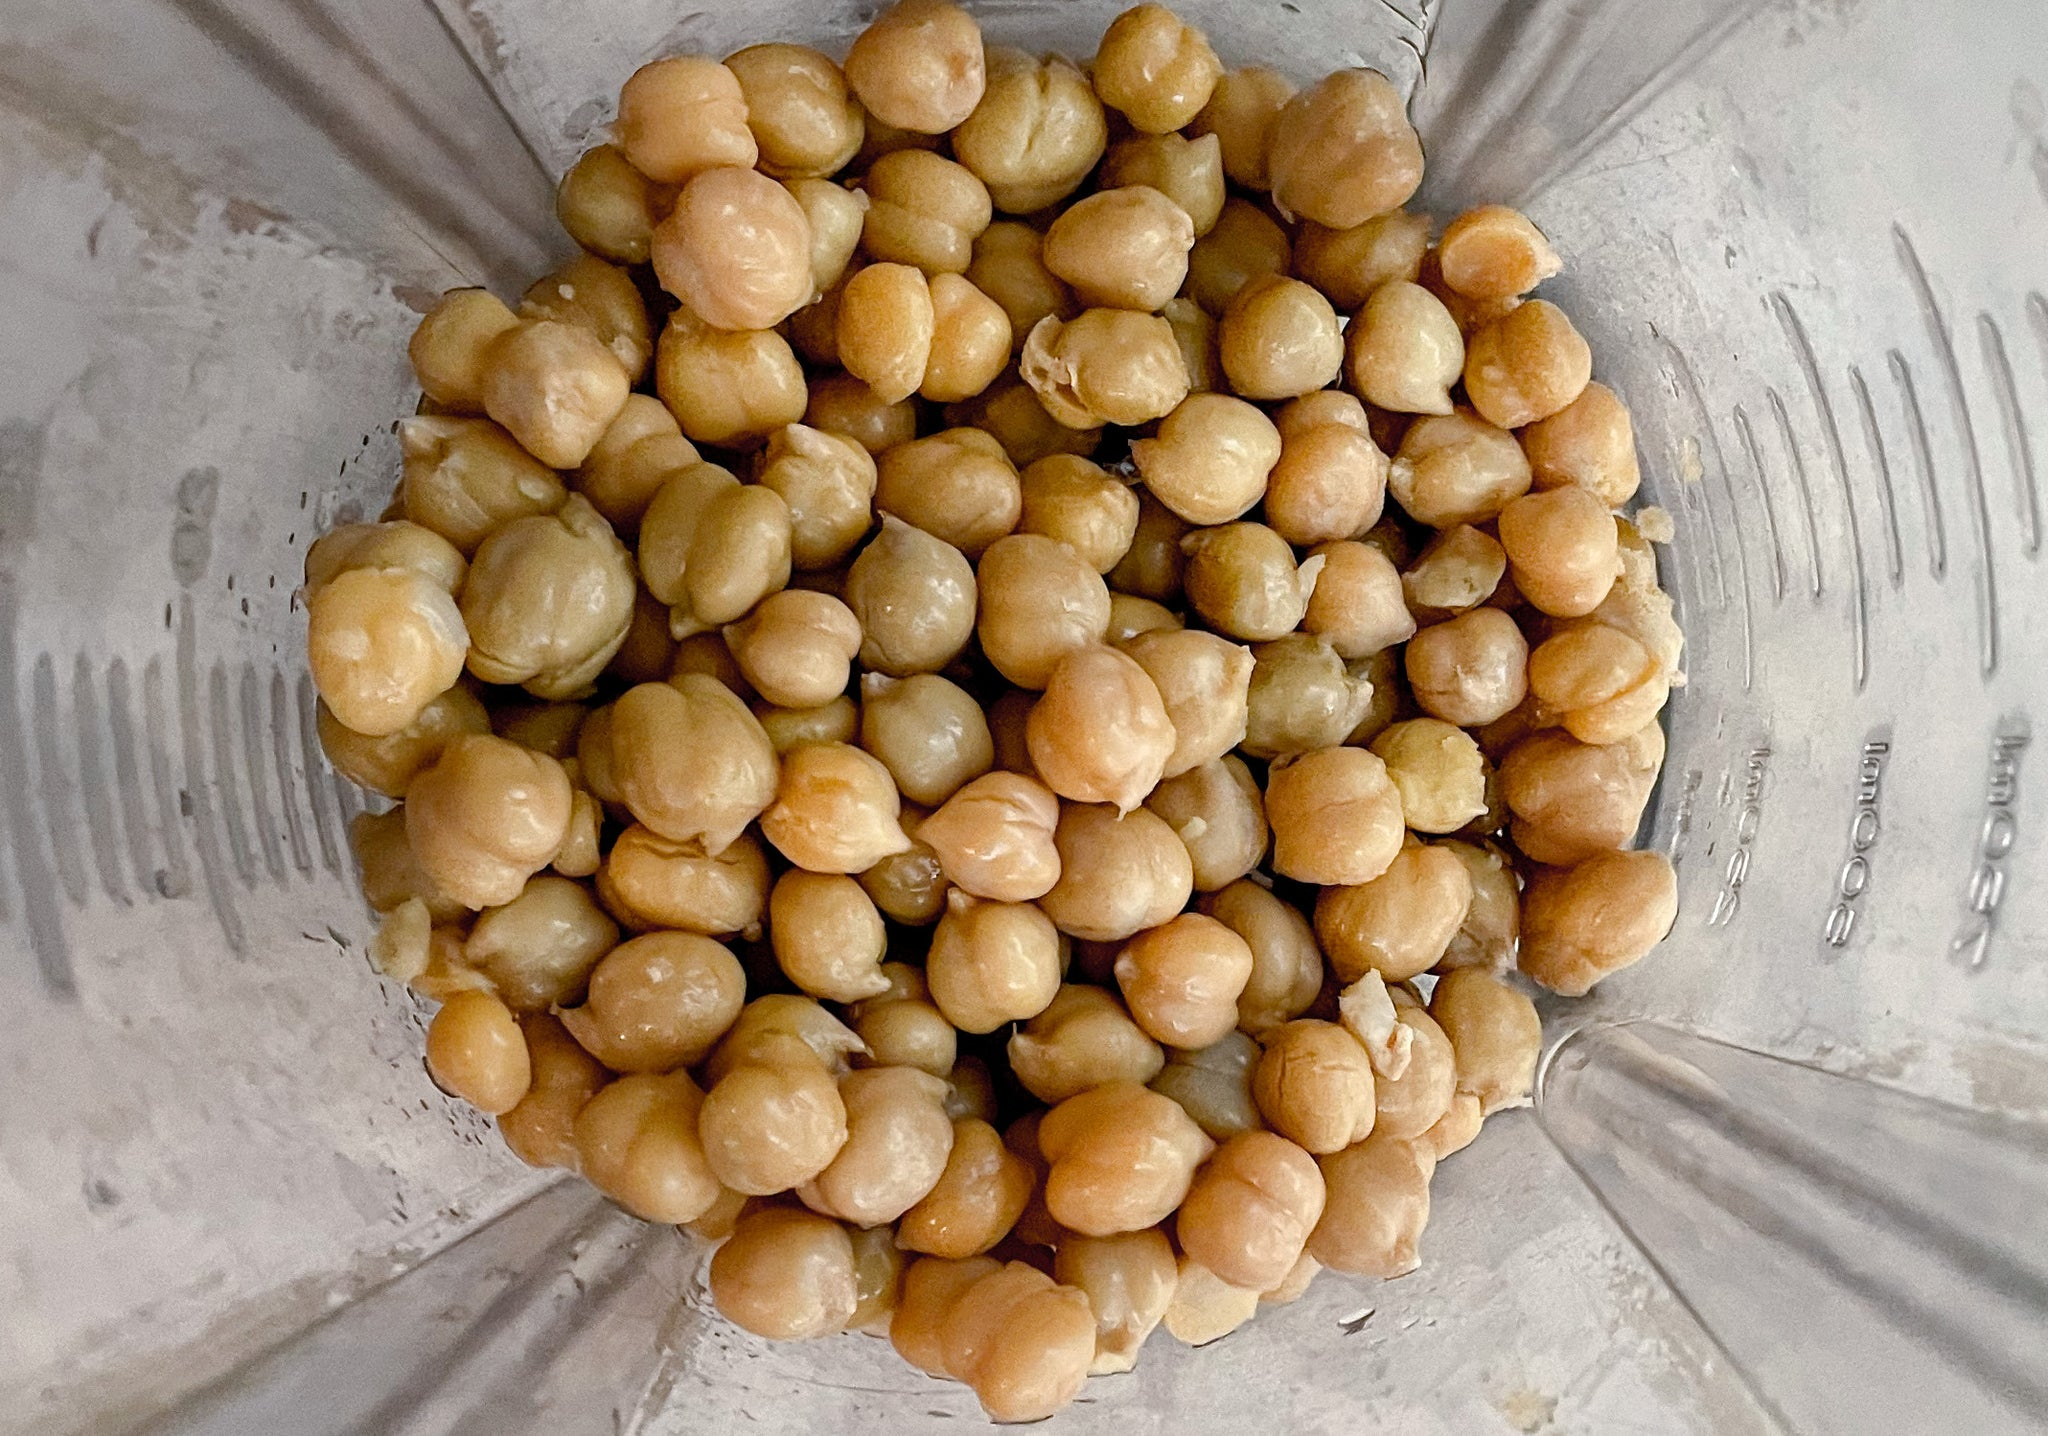 peeled chickpeas in a blender